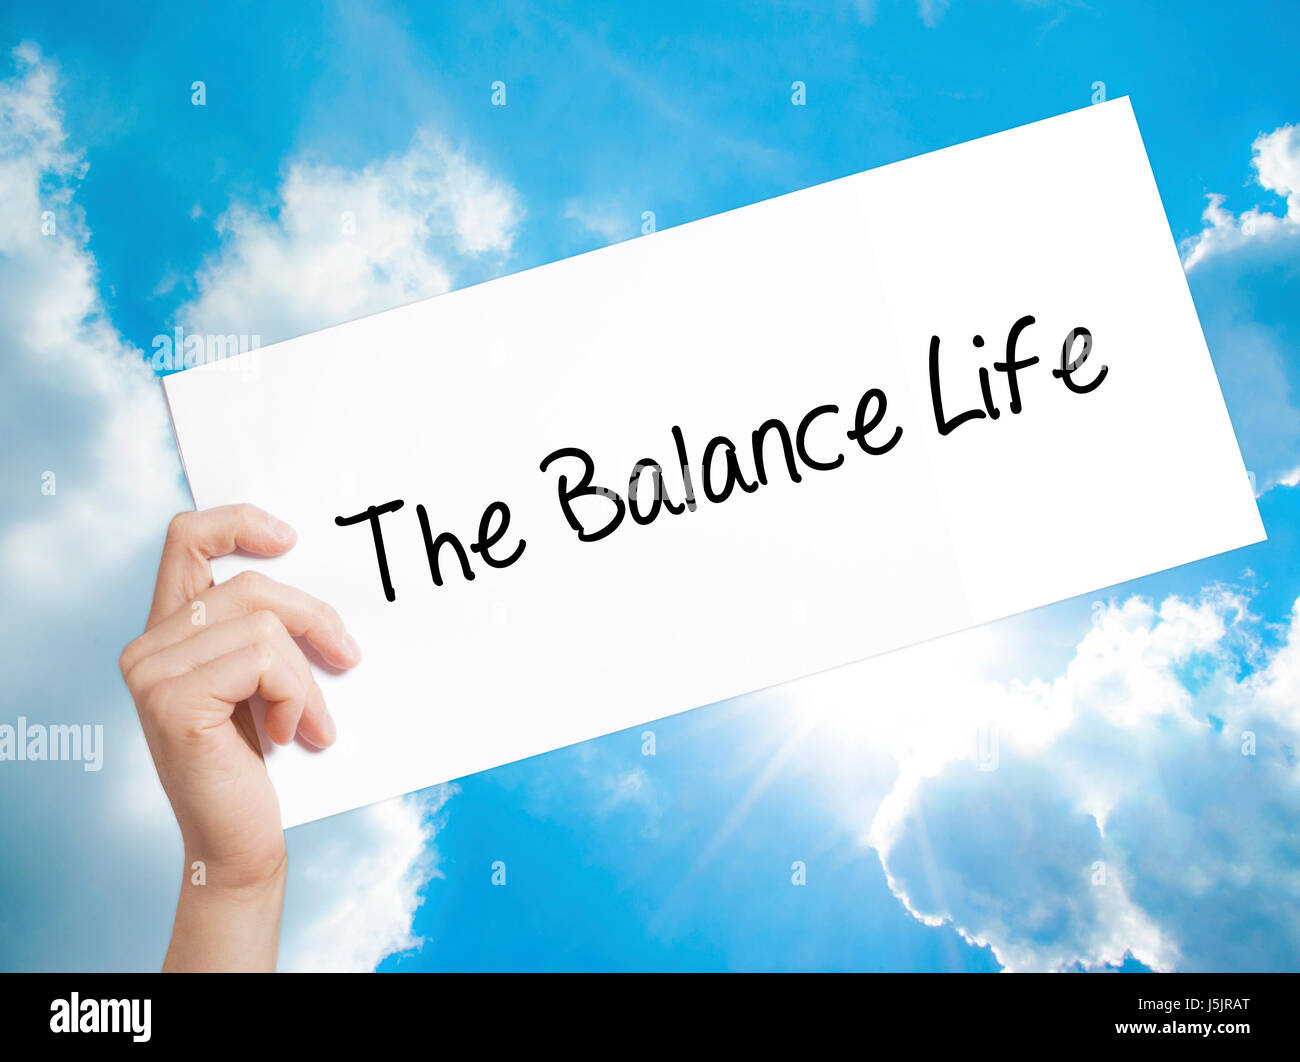 the balance life sign on white paper man hand holding paper with